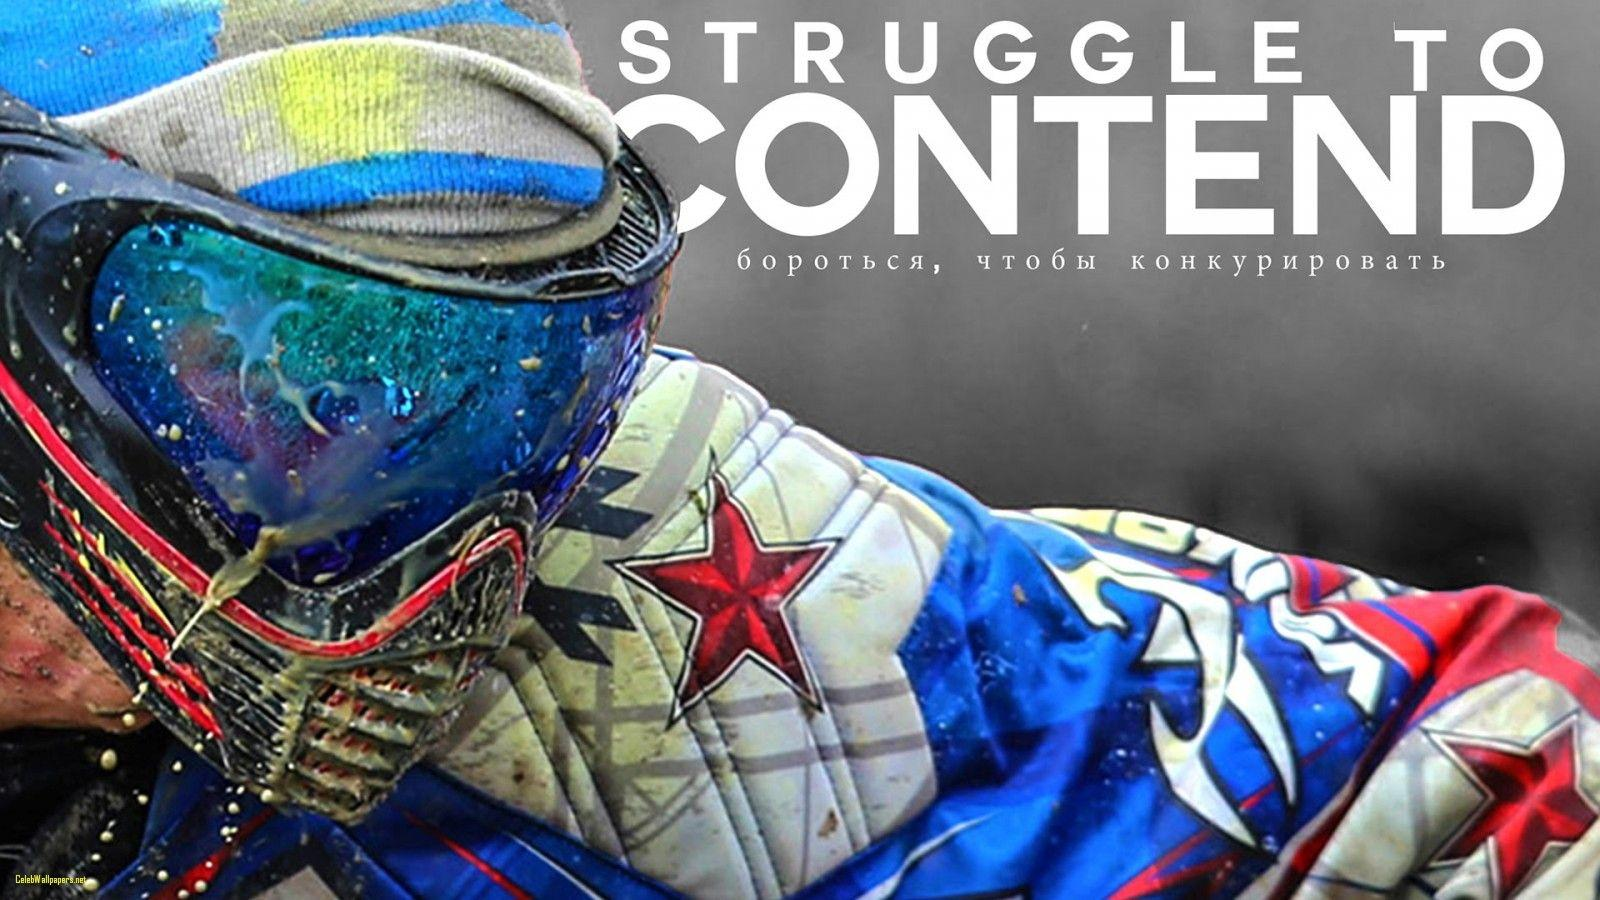 Finally some Paintball Psp Wallpapers Fresh Paintball Wallpapers